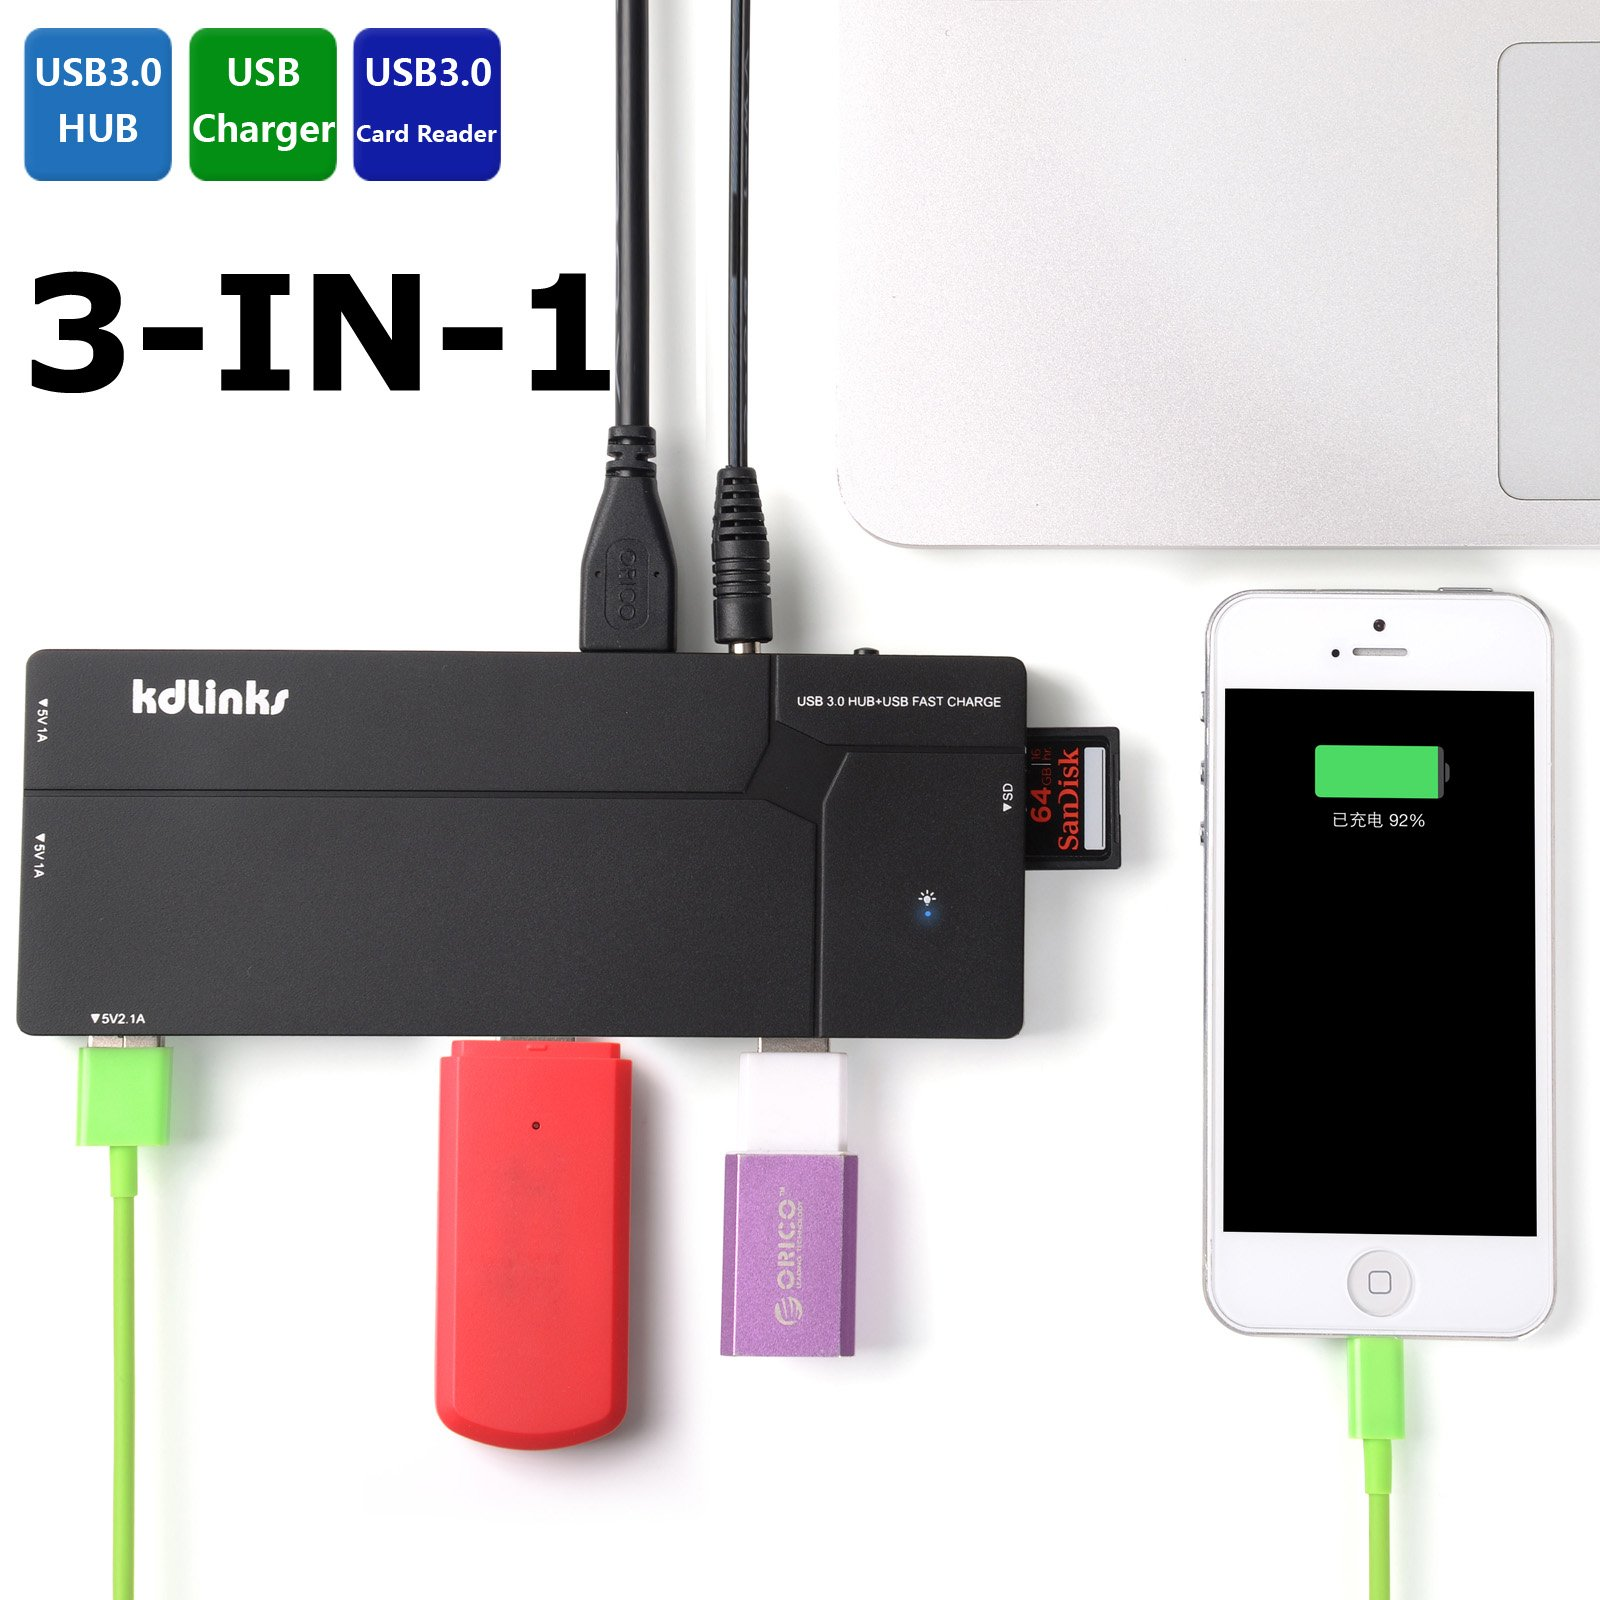 KDLINKS Ultra Slim Multi-Function 10 Ports USB 3.0 All In One Hub Station: 6 Ports USB 3.0 Hub, 3 USB Charger, 1 SD Card Reader (Backward Compatible with USB 2.0/1.1)